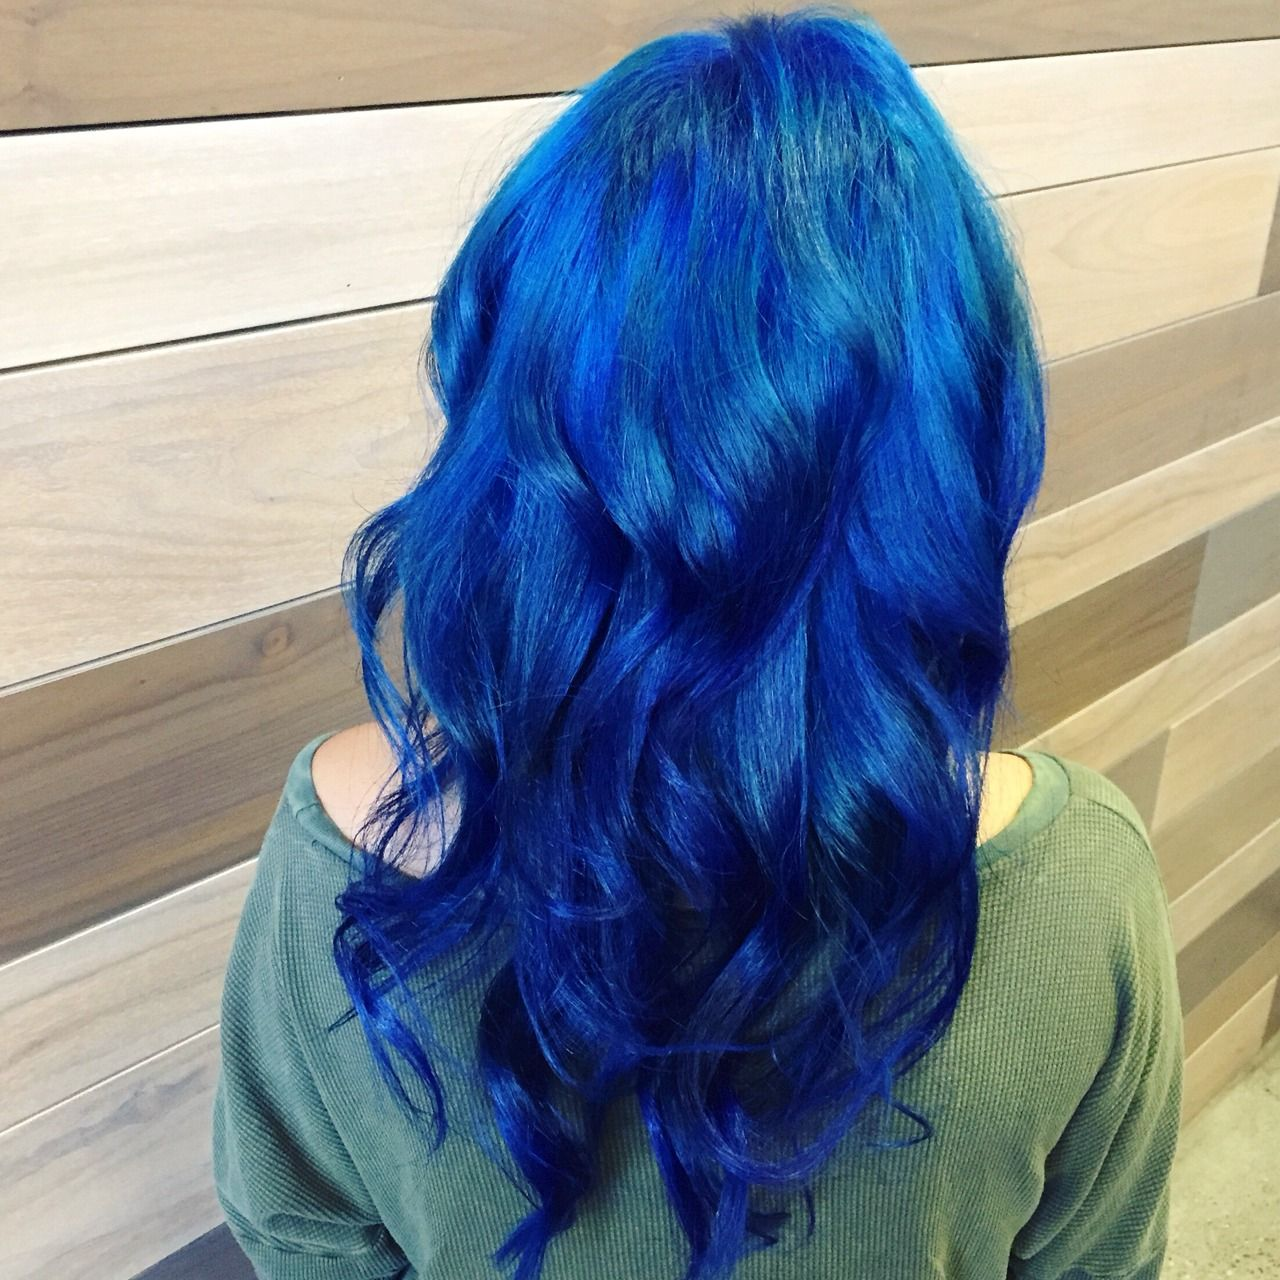 Pin by jenna on locked nu loaded pinterest blue hair and